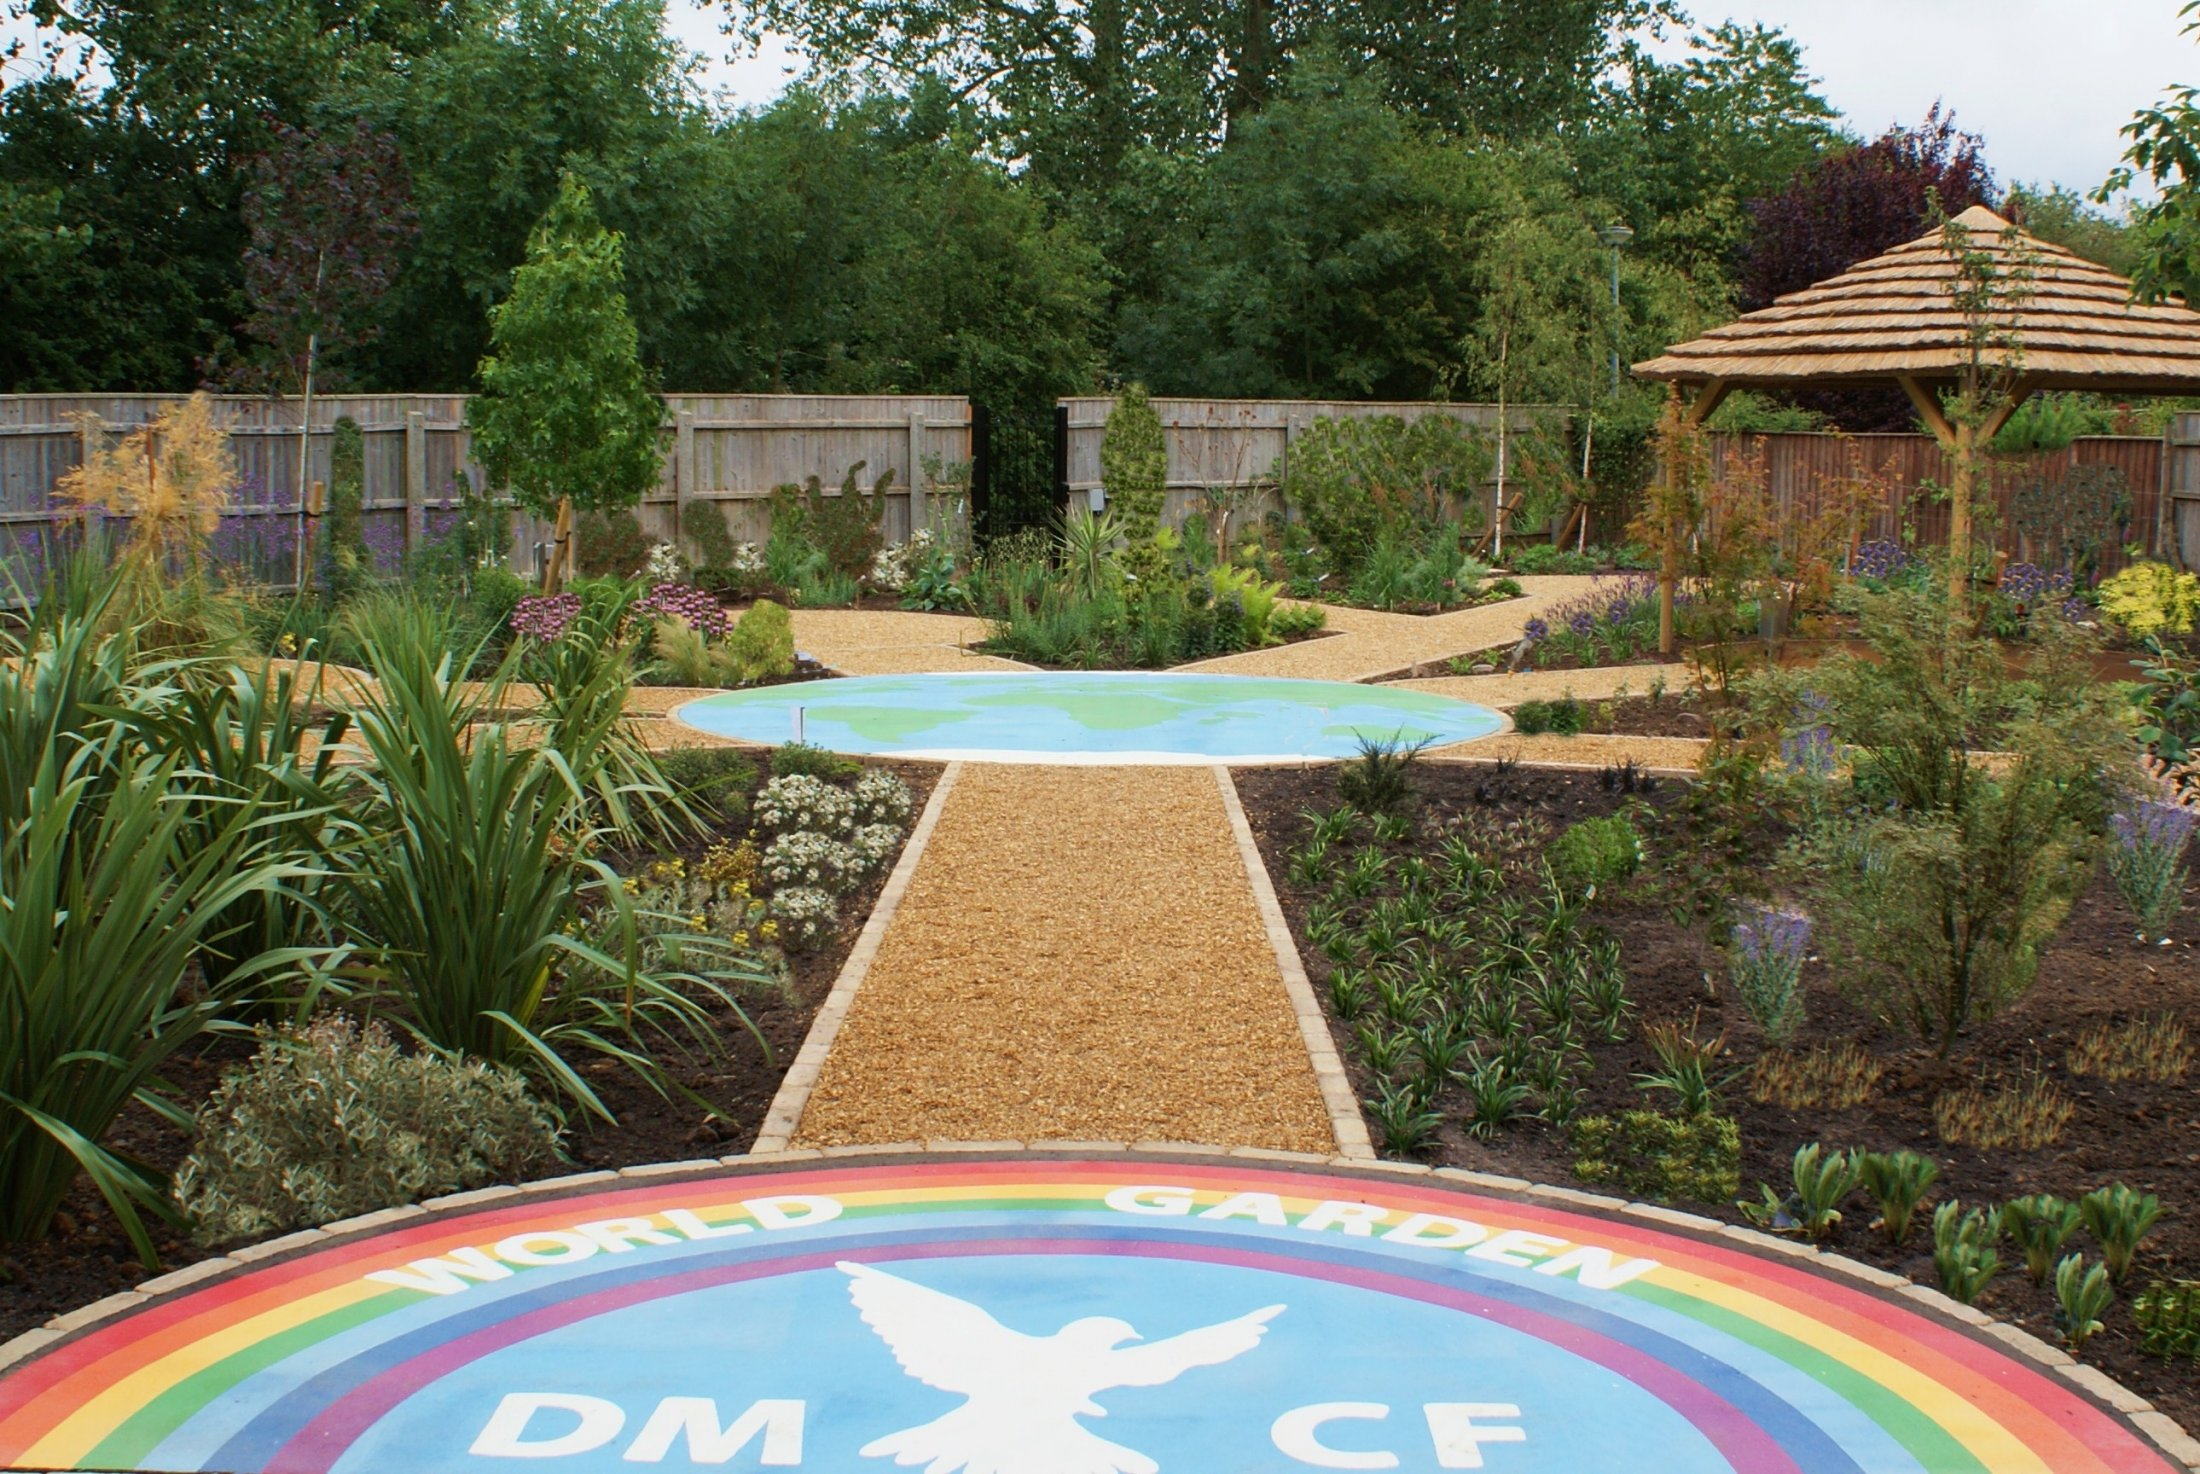 Lottery funded community garden design